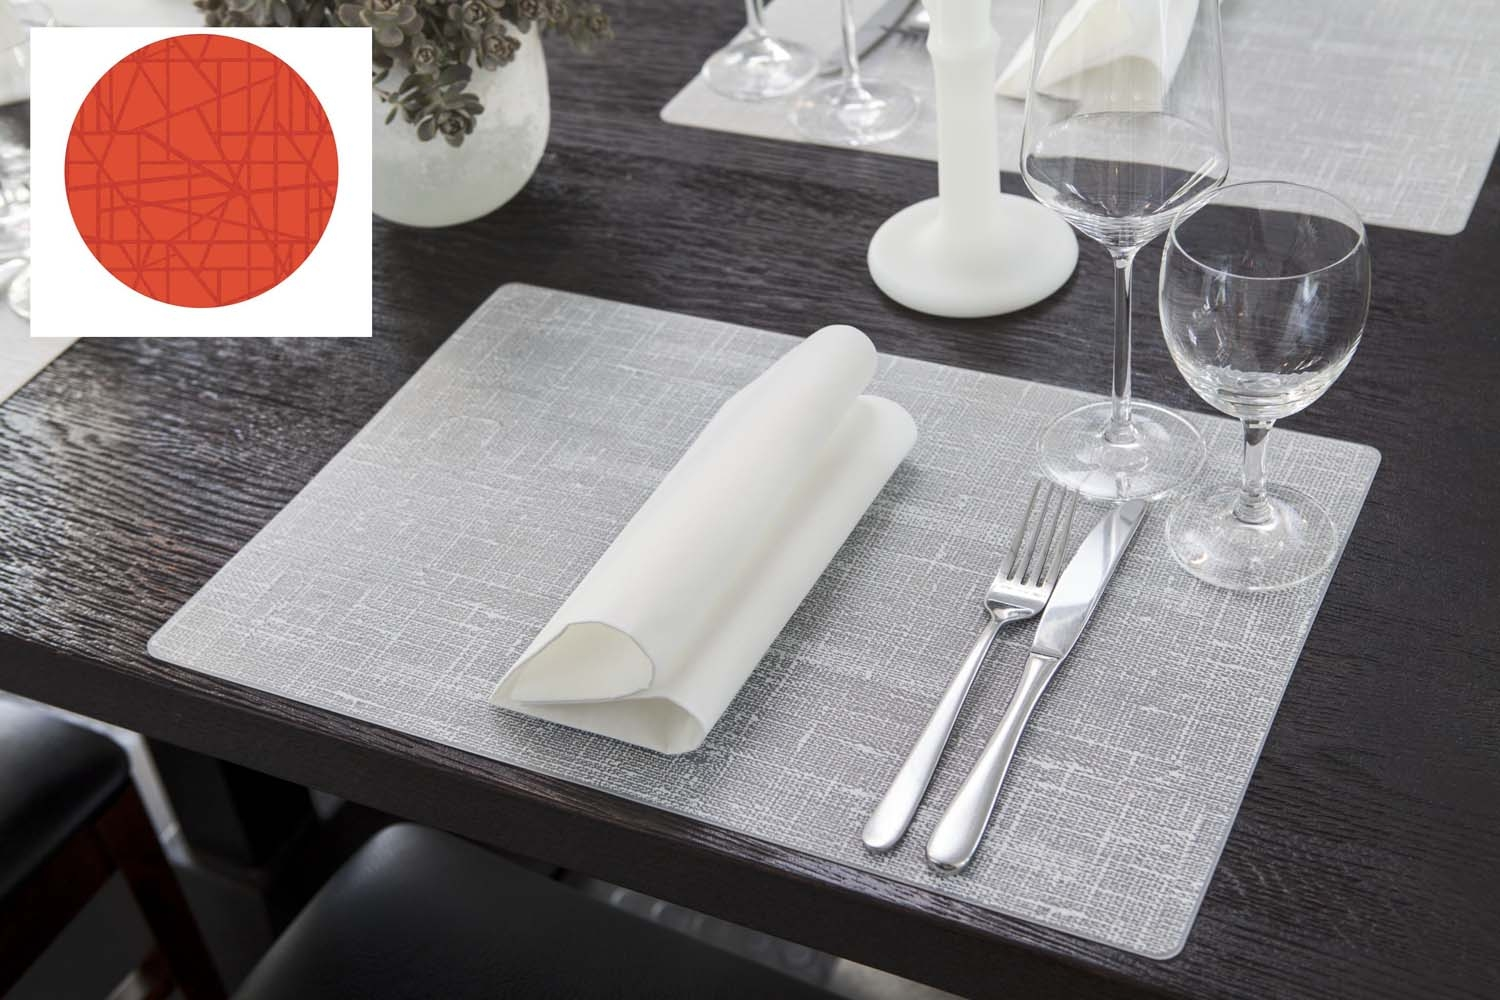 Set de table silicone mandarine 30 x 45 cm duni paquet de 6 Set de table a personnaliser